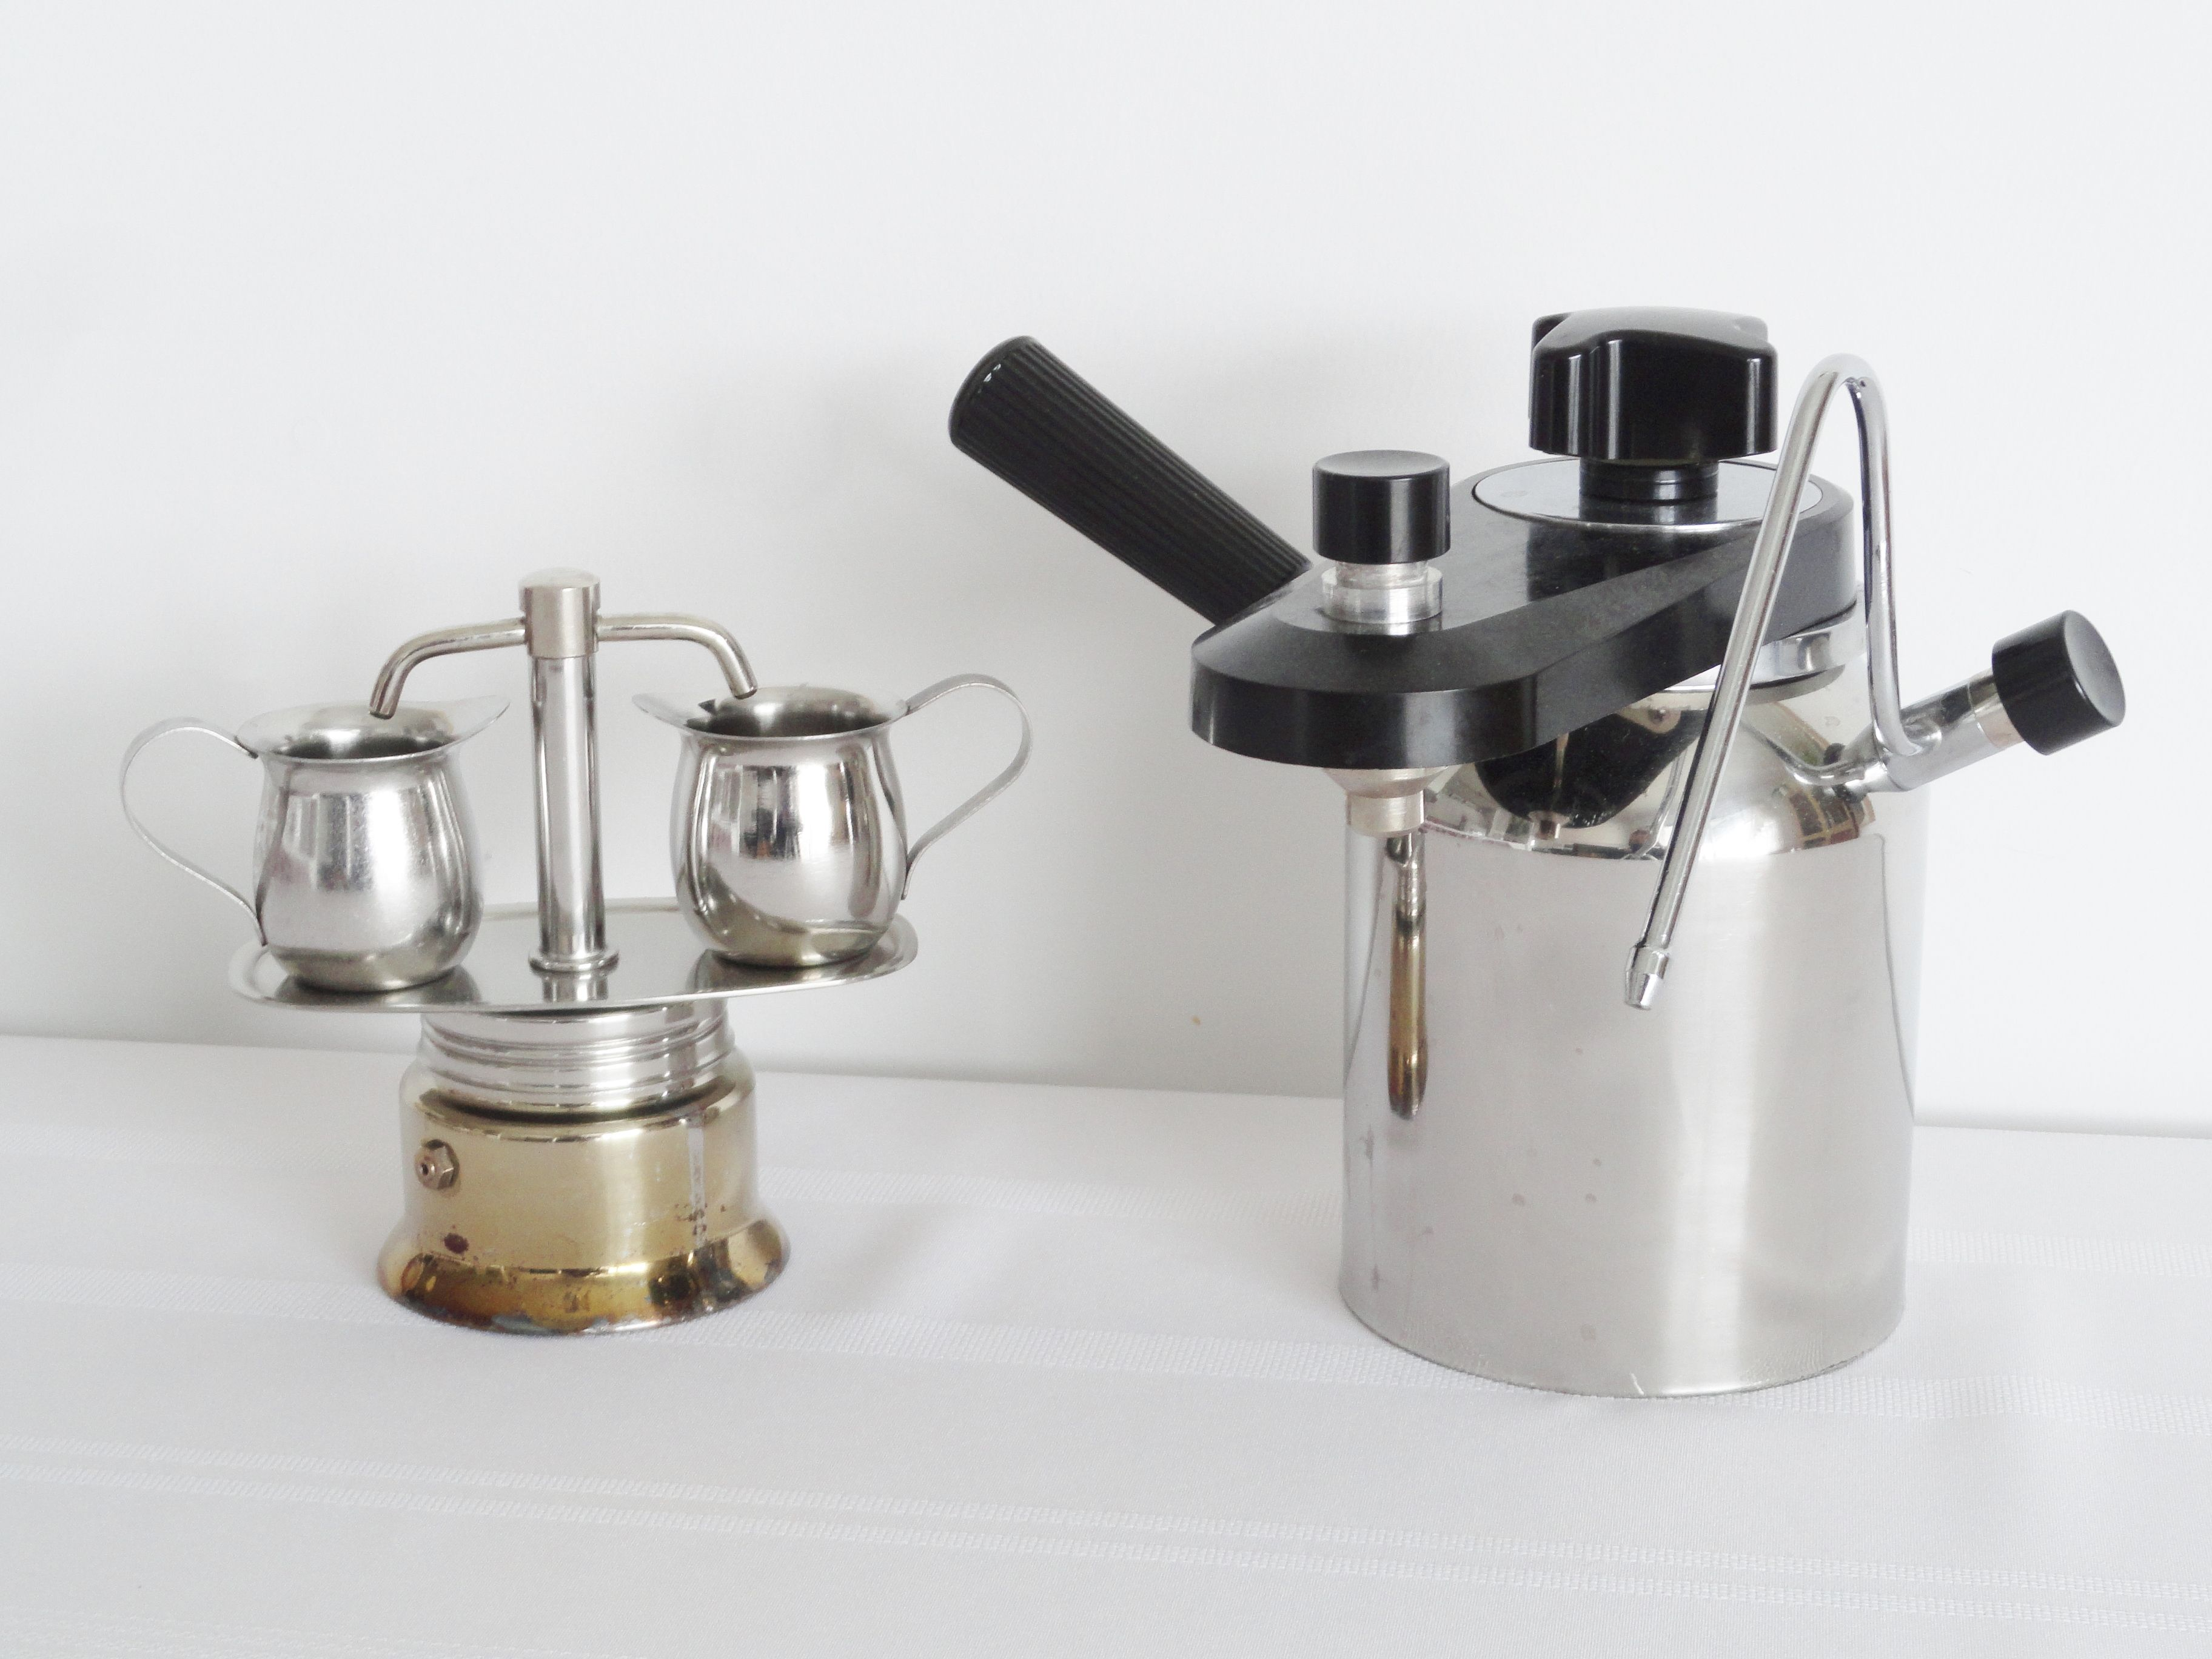 Handleiding Daalderop Professional Coffee Maker : My vintage small 2 shot stove top espresso maker, and Bellman stove top espresso maker and ...